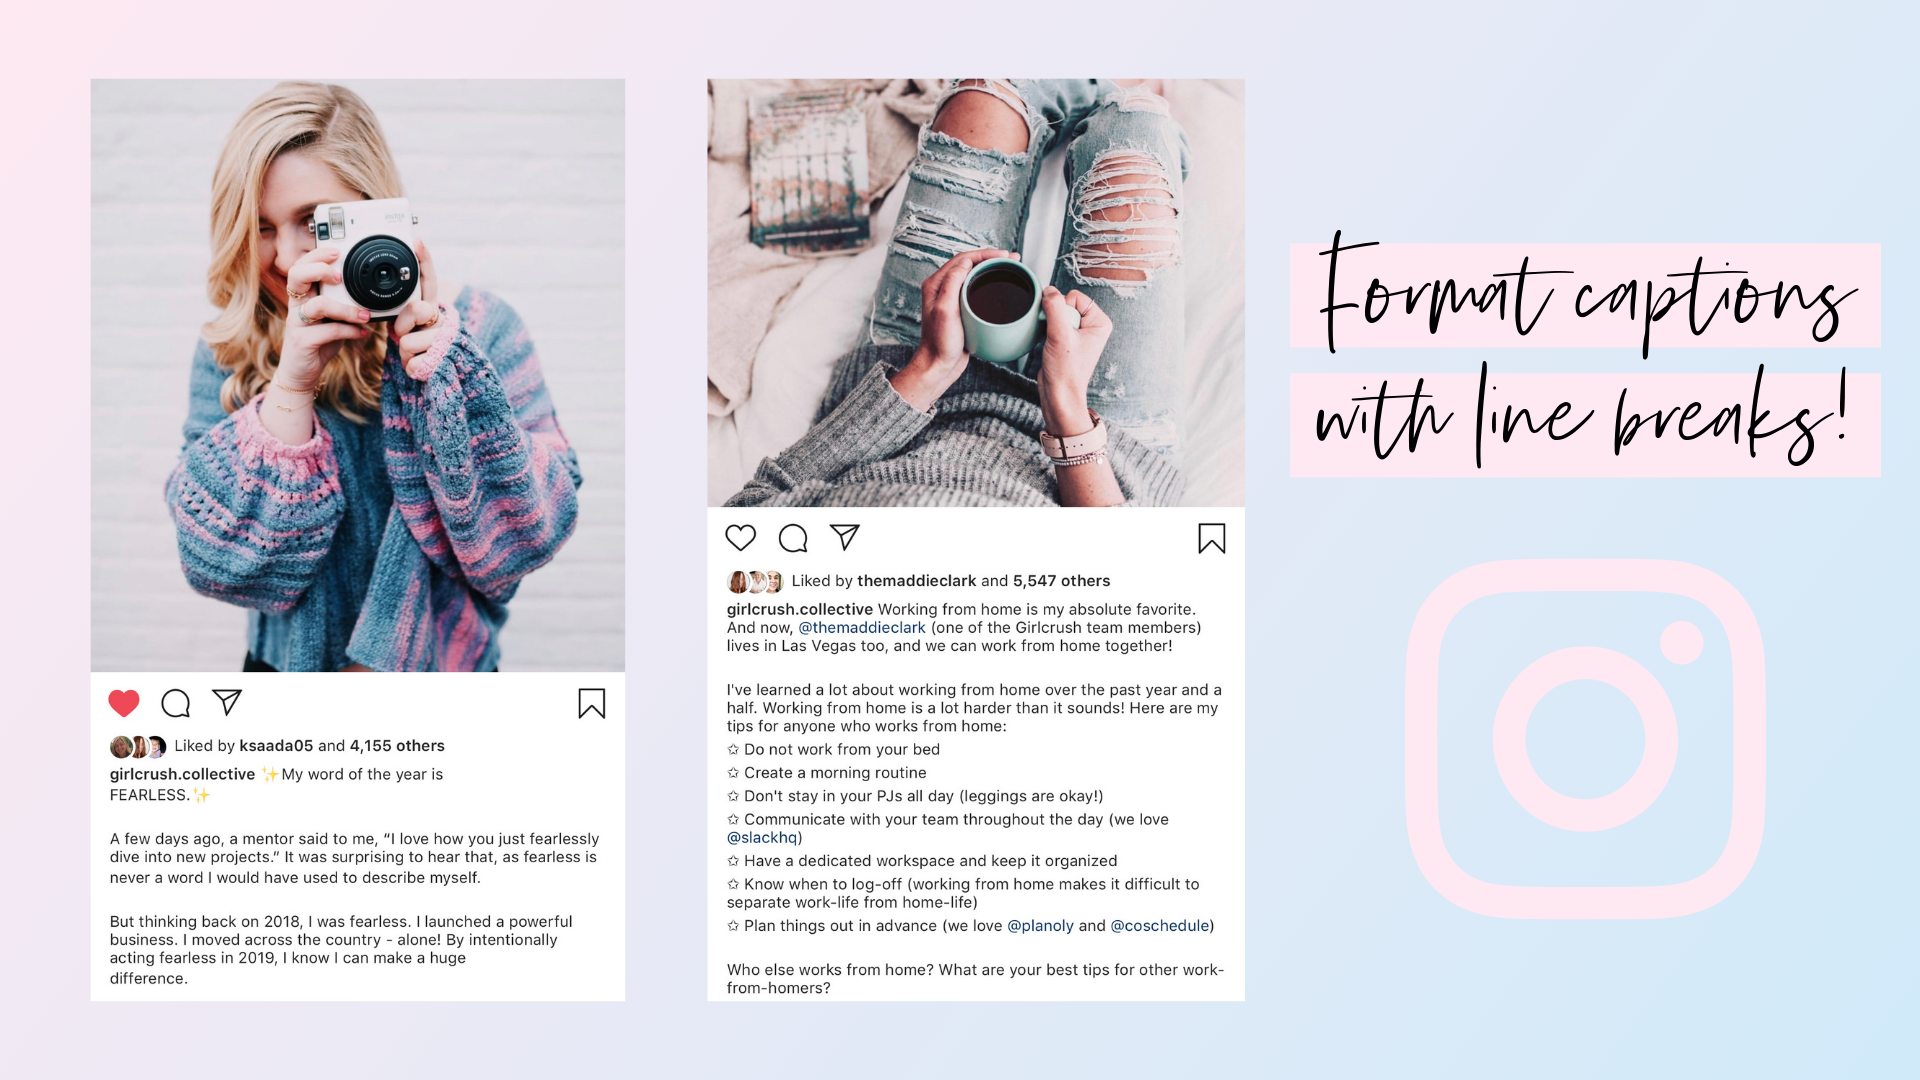 format instagram captions with line breaks